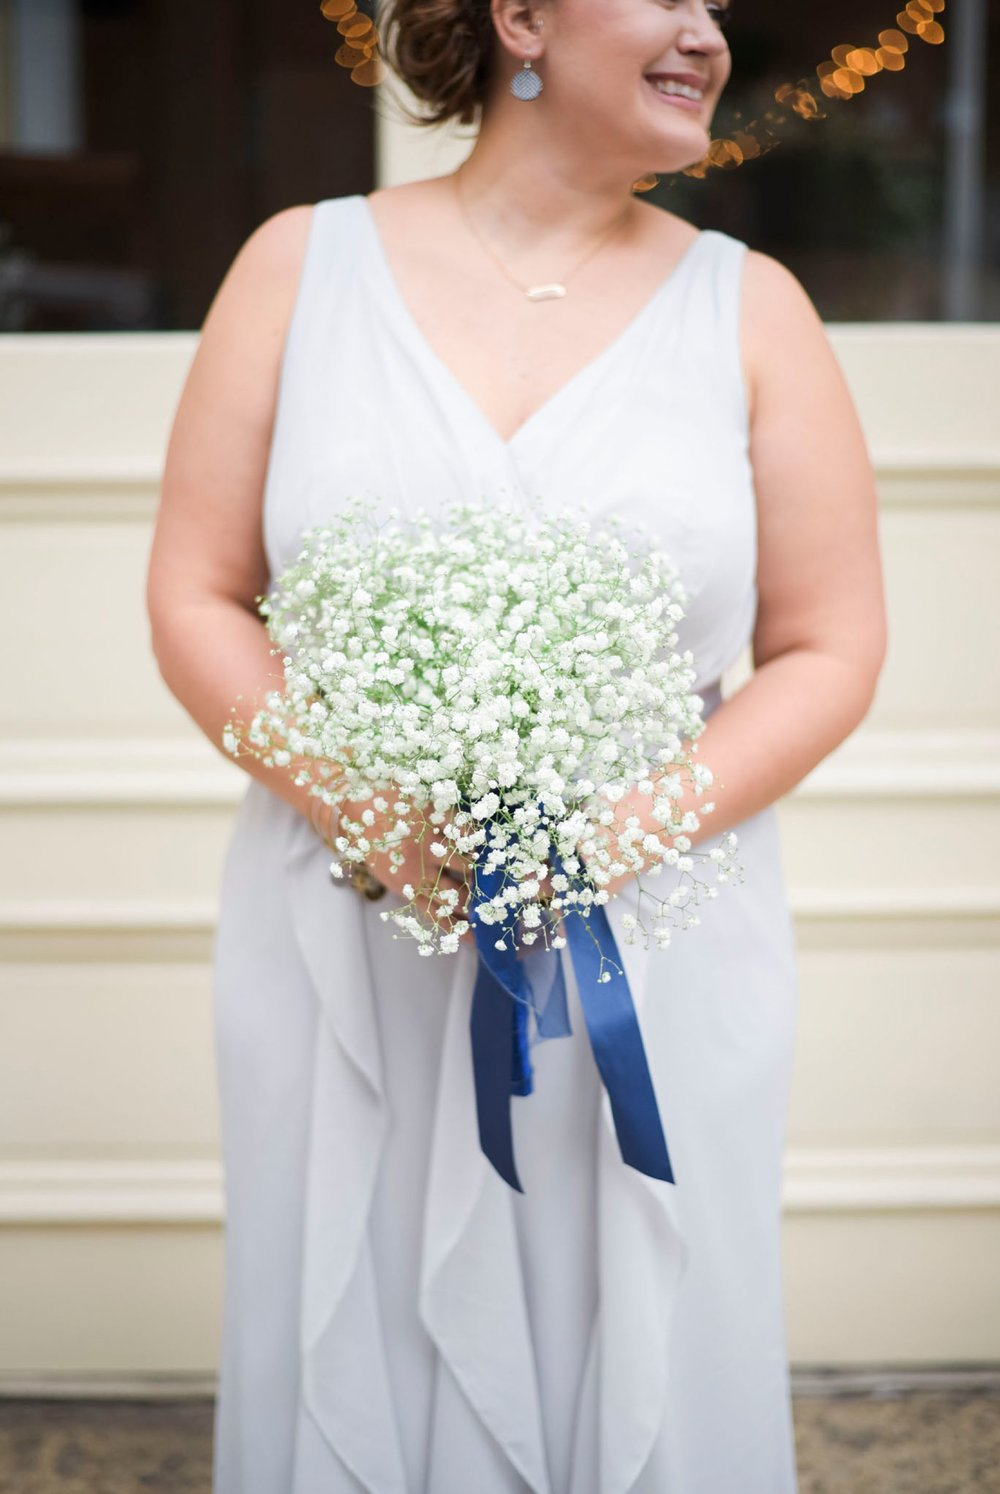 Trescaon8th_DowntownLynchburg_Virginiaweddingphotographer 57.jpg